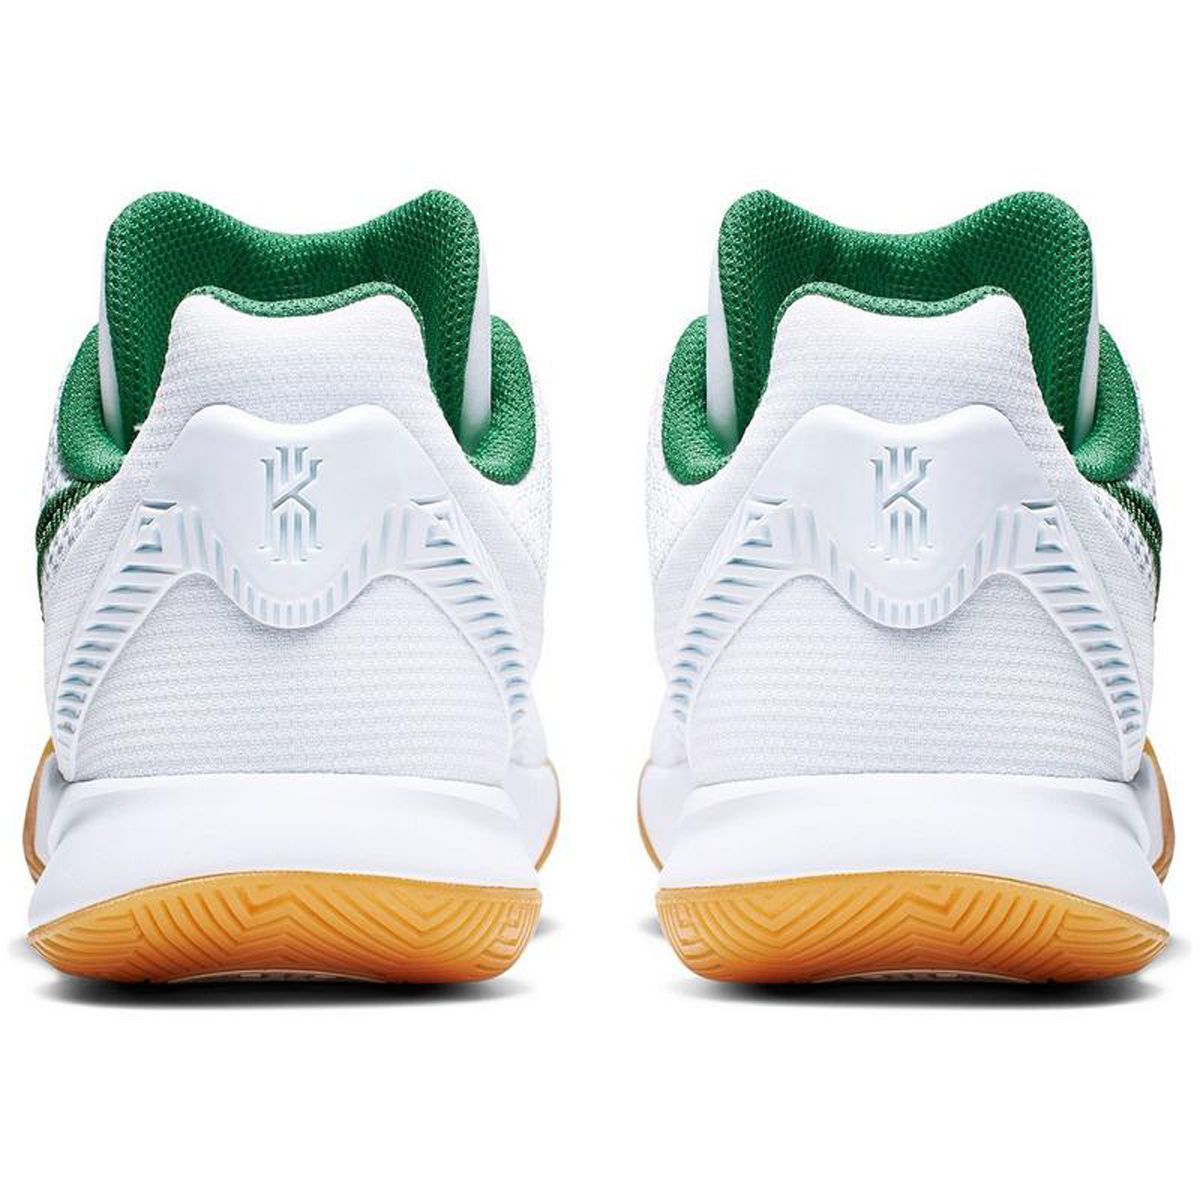 super popular 784fa fd81f Kyrie Irving's Nike Kyrie Flytrap 2 Sports Celtics Pride ...